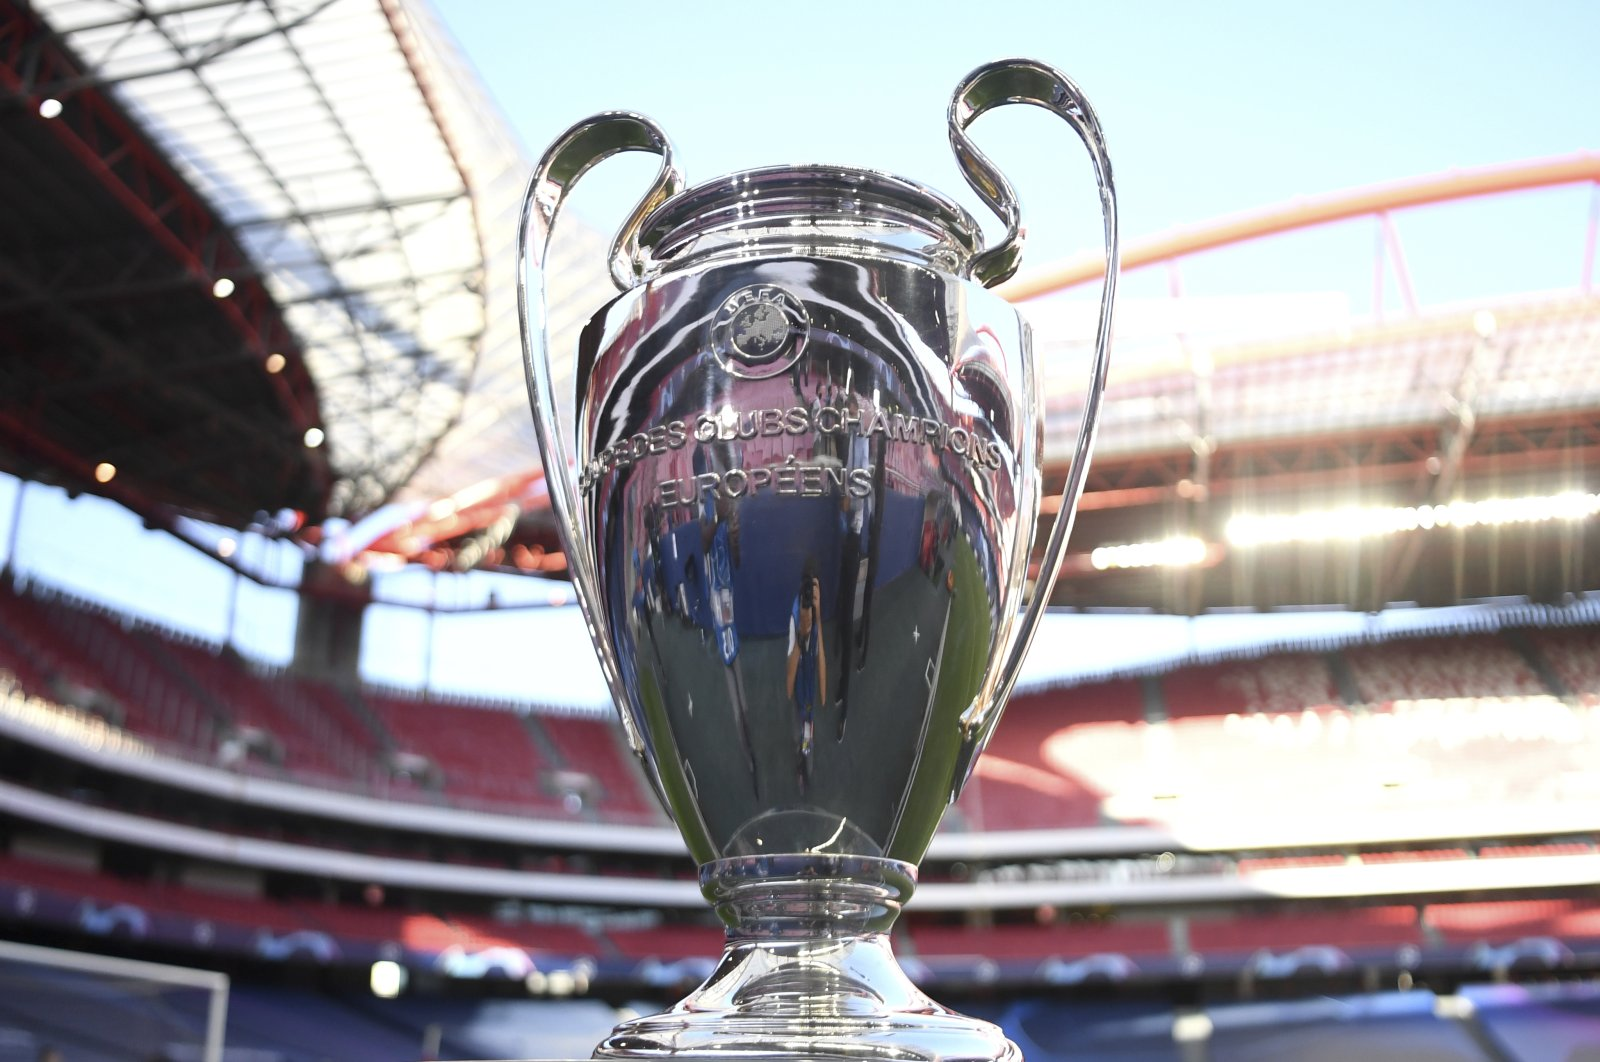 The Champions League trophy is displayed before a semifinal match between RB Leipzig and Paris Saint-Germain at Luz Stadium in Lisbon, Portugal, Aug. 18, 2020. (AP Photo)